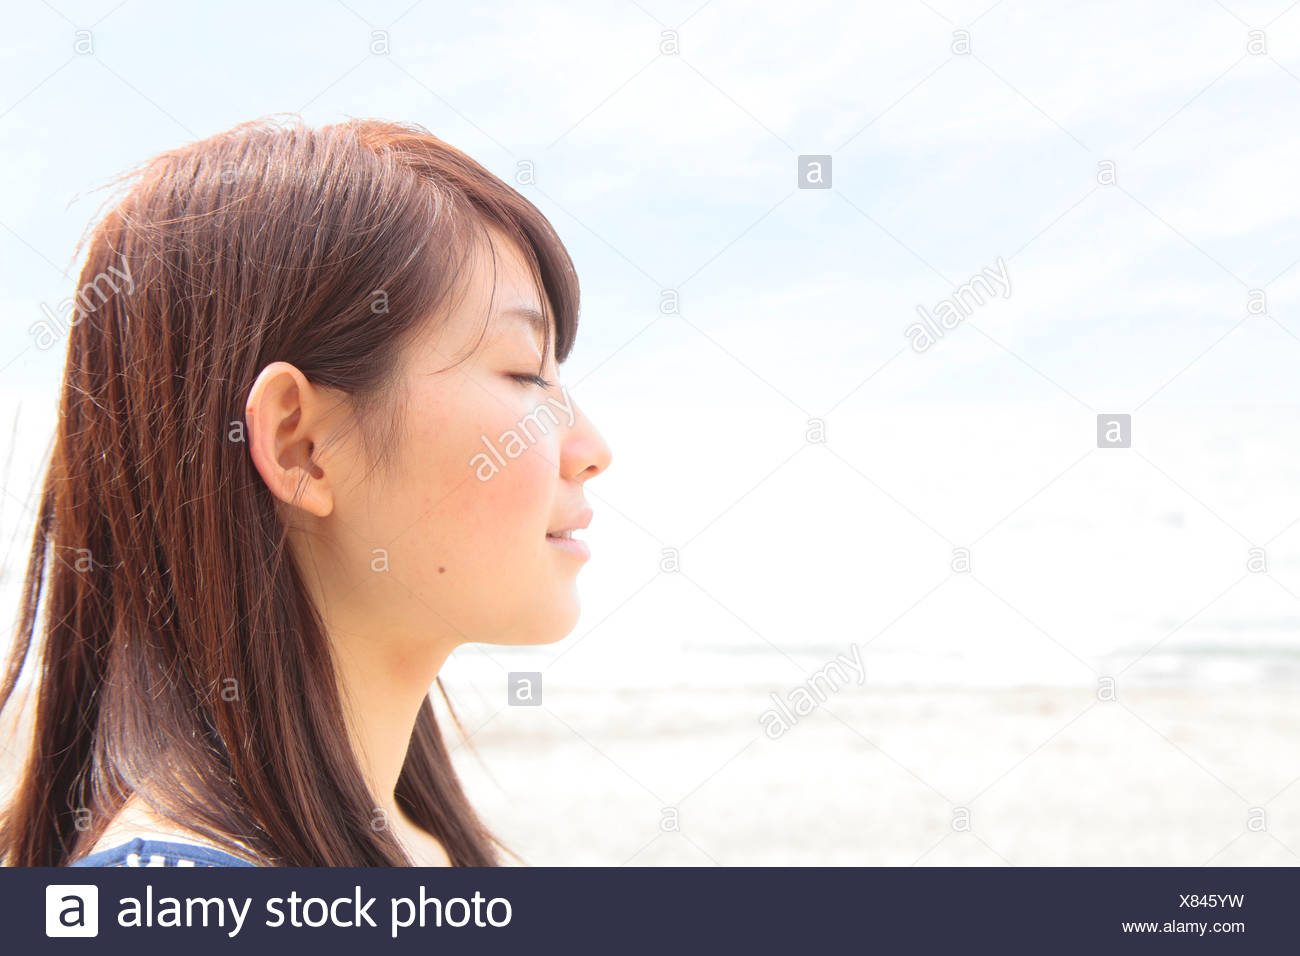 Profile of young woman with eyes closed - Stock Image